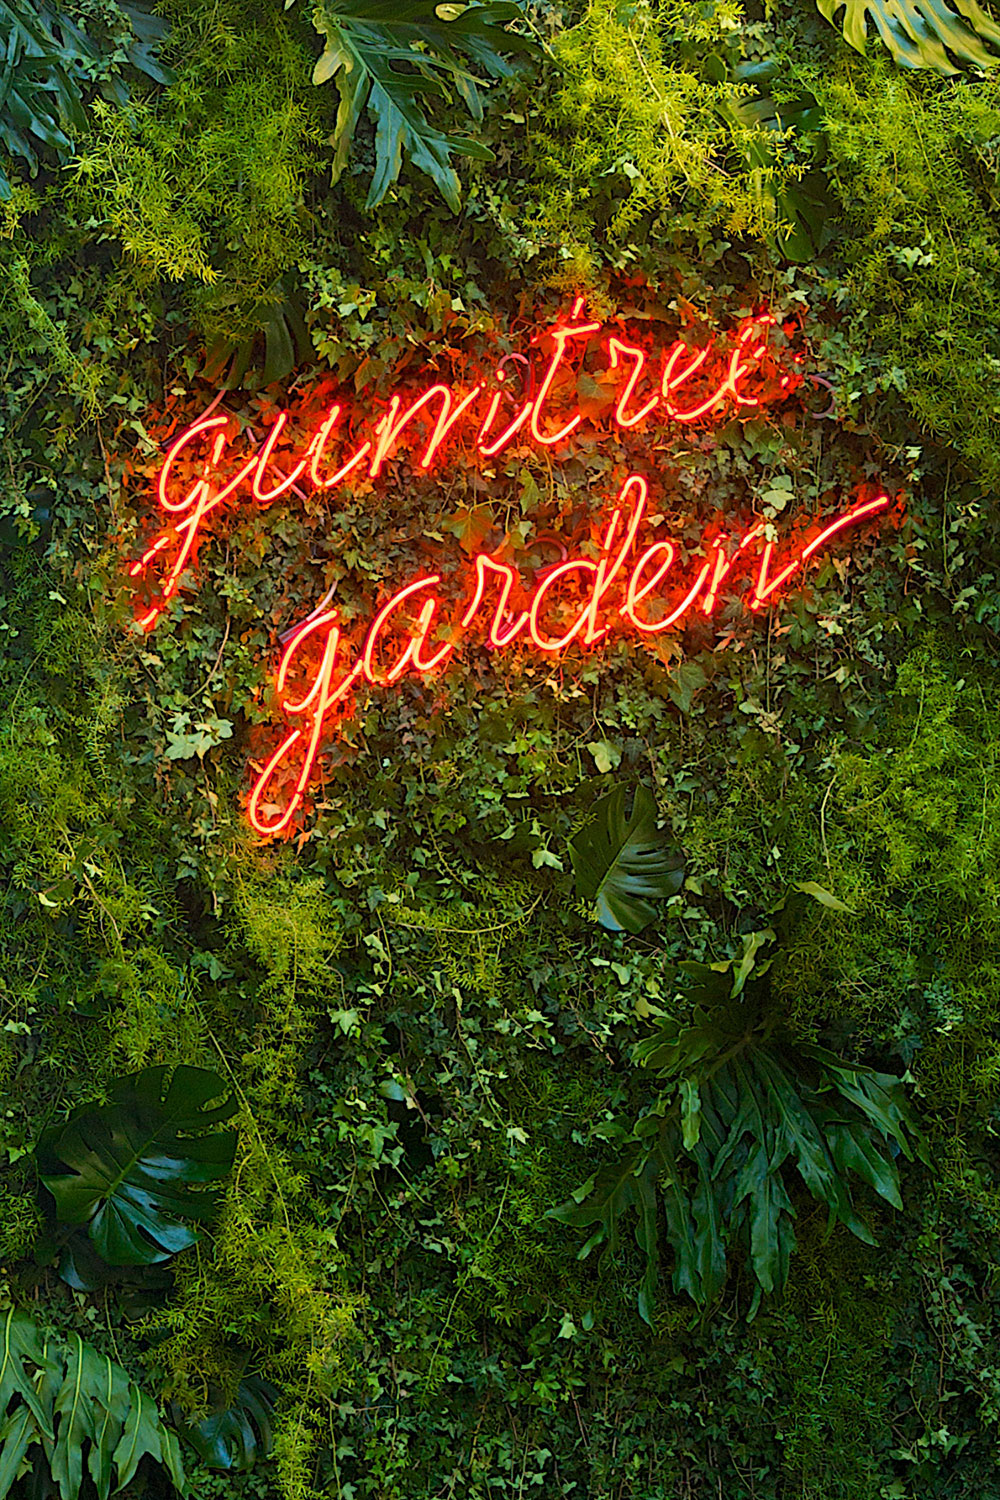 Gumtree-Garden-pop-up-bar-designed-by-Yellowtrace.jpg